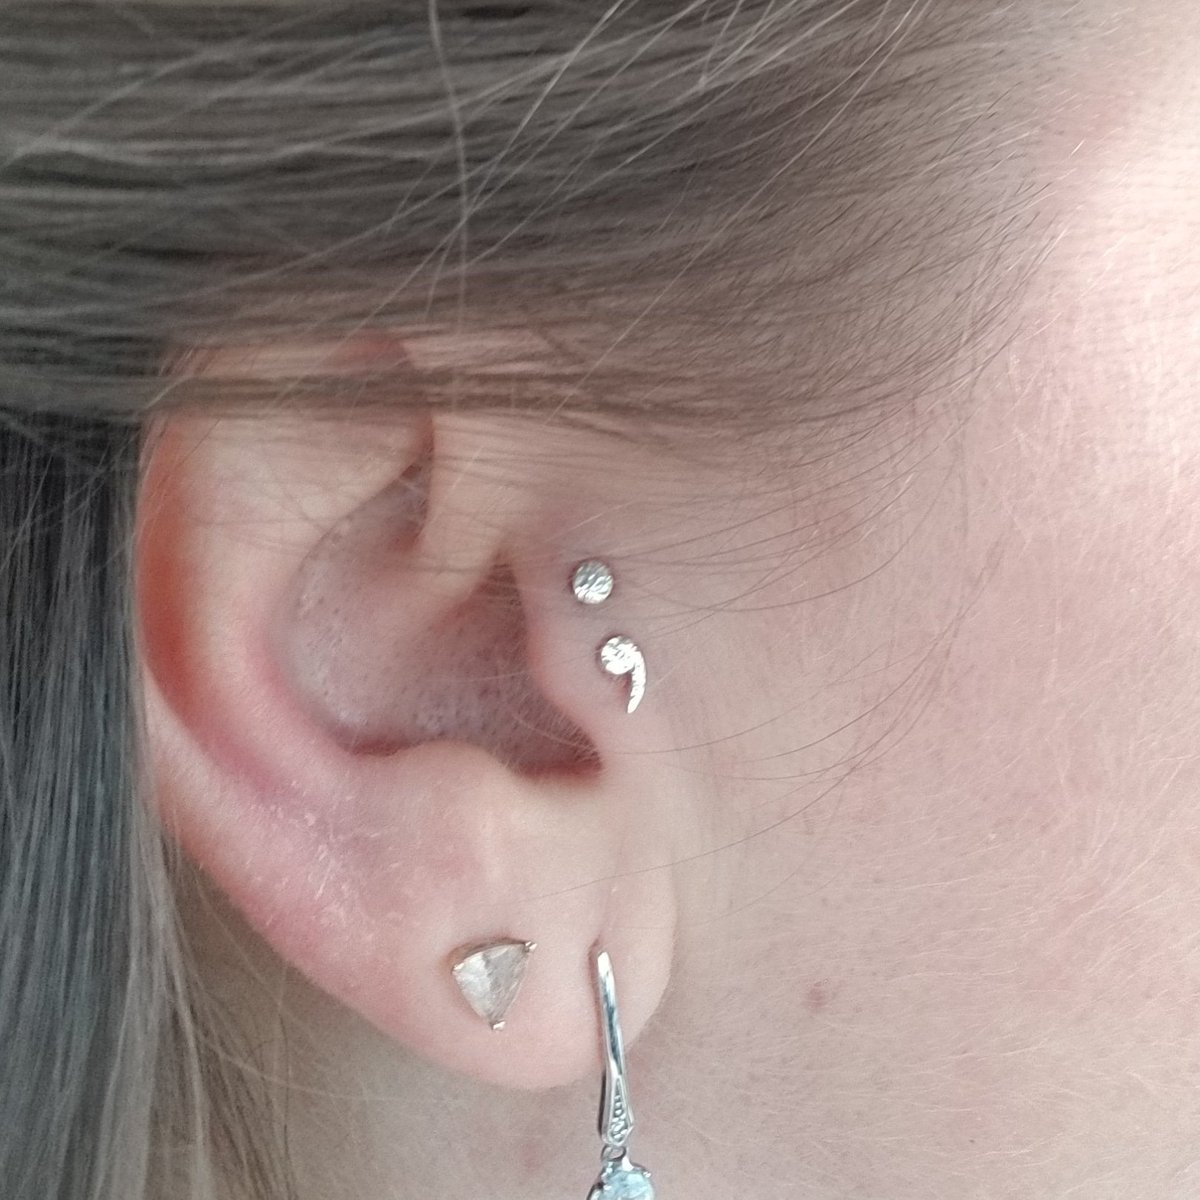 Renee Labranche On Twitter My New Addition Double Tragus